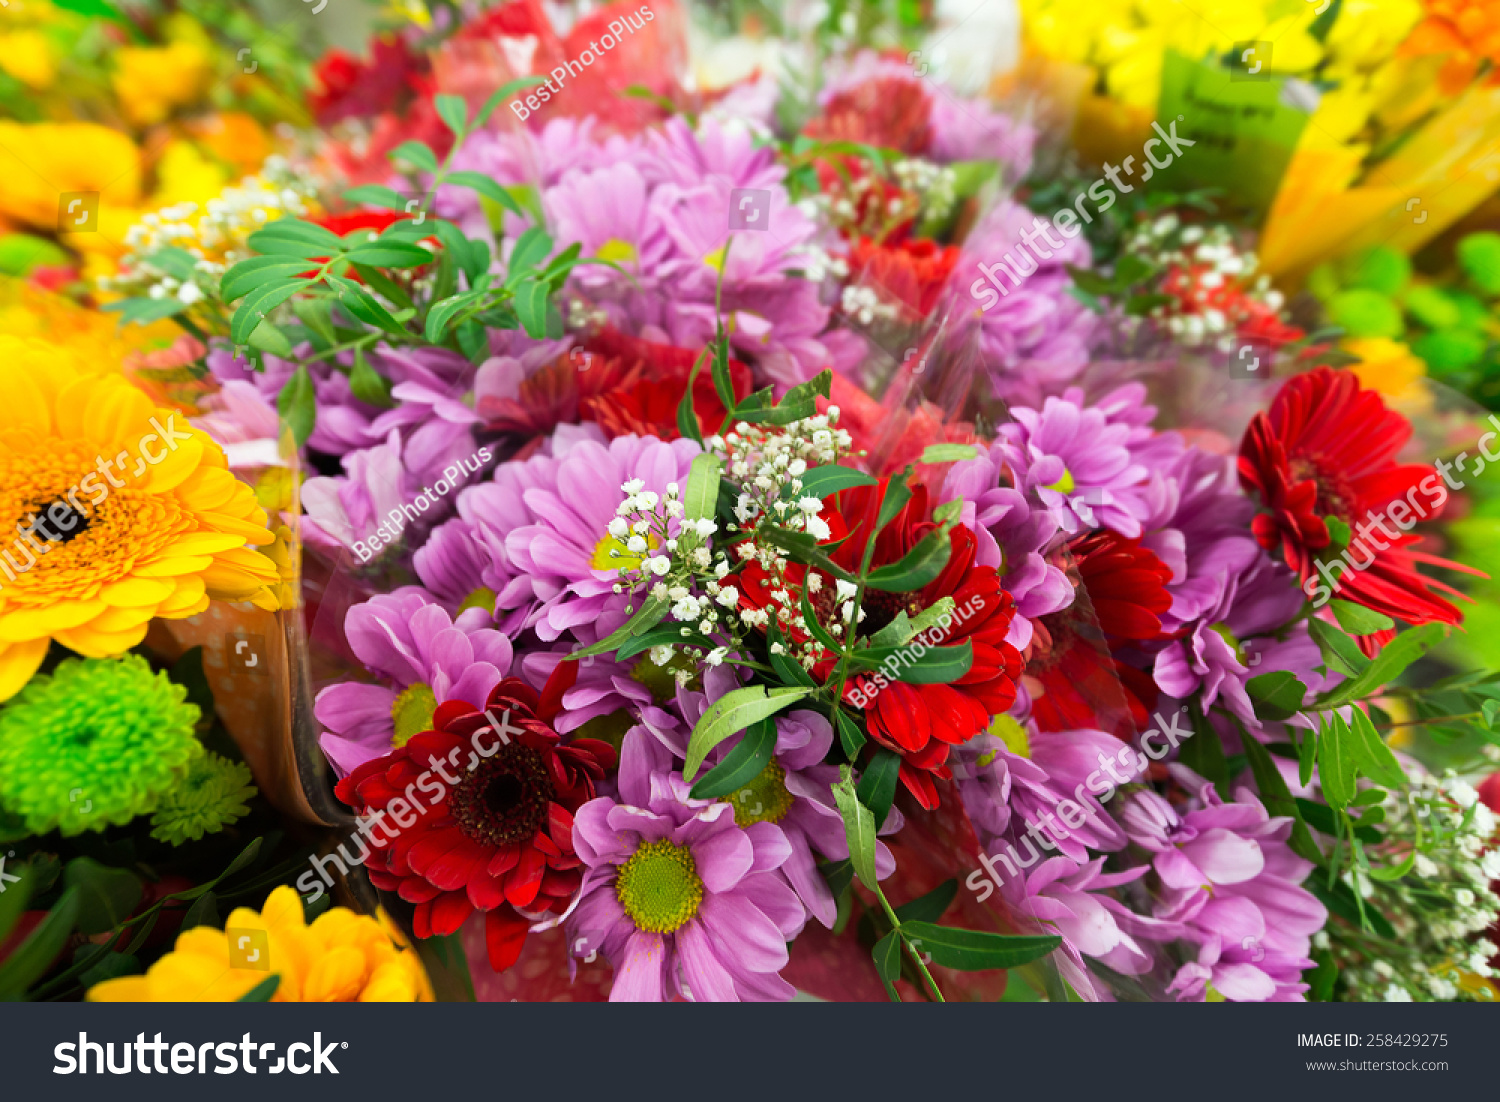 Flower Bouquet Different Flowers Stock Photo & Image (Royalty-Free ...